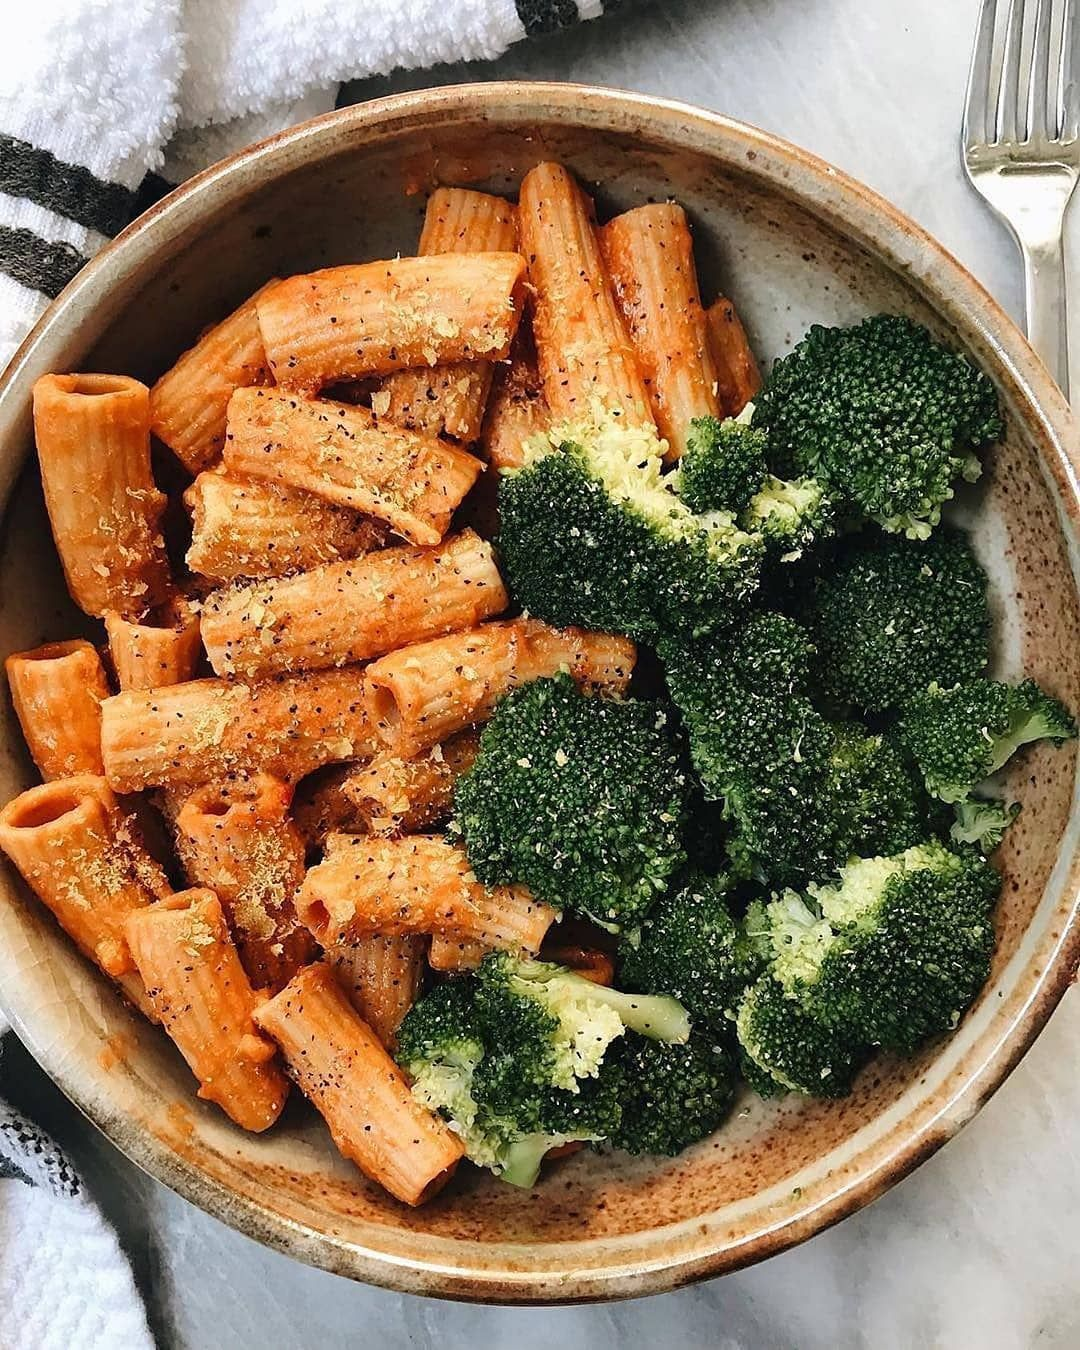 Vegspiration Daily Vegan Food On Instagram Rigatoni With Vegan Sauce And Steamed Broccoli By Plantbasedjane Vegan S Food Healthy Recipes Healty Food